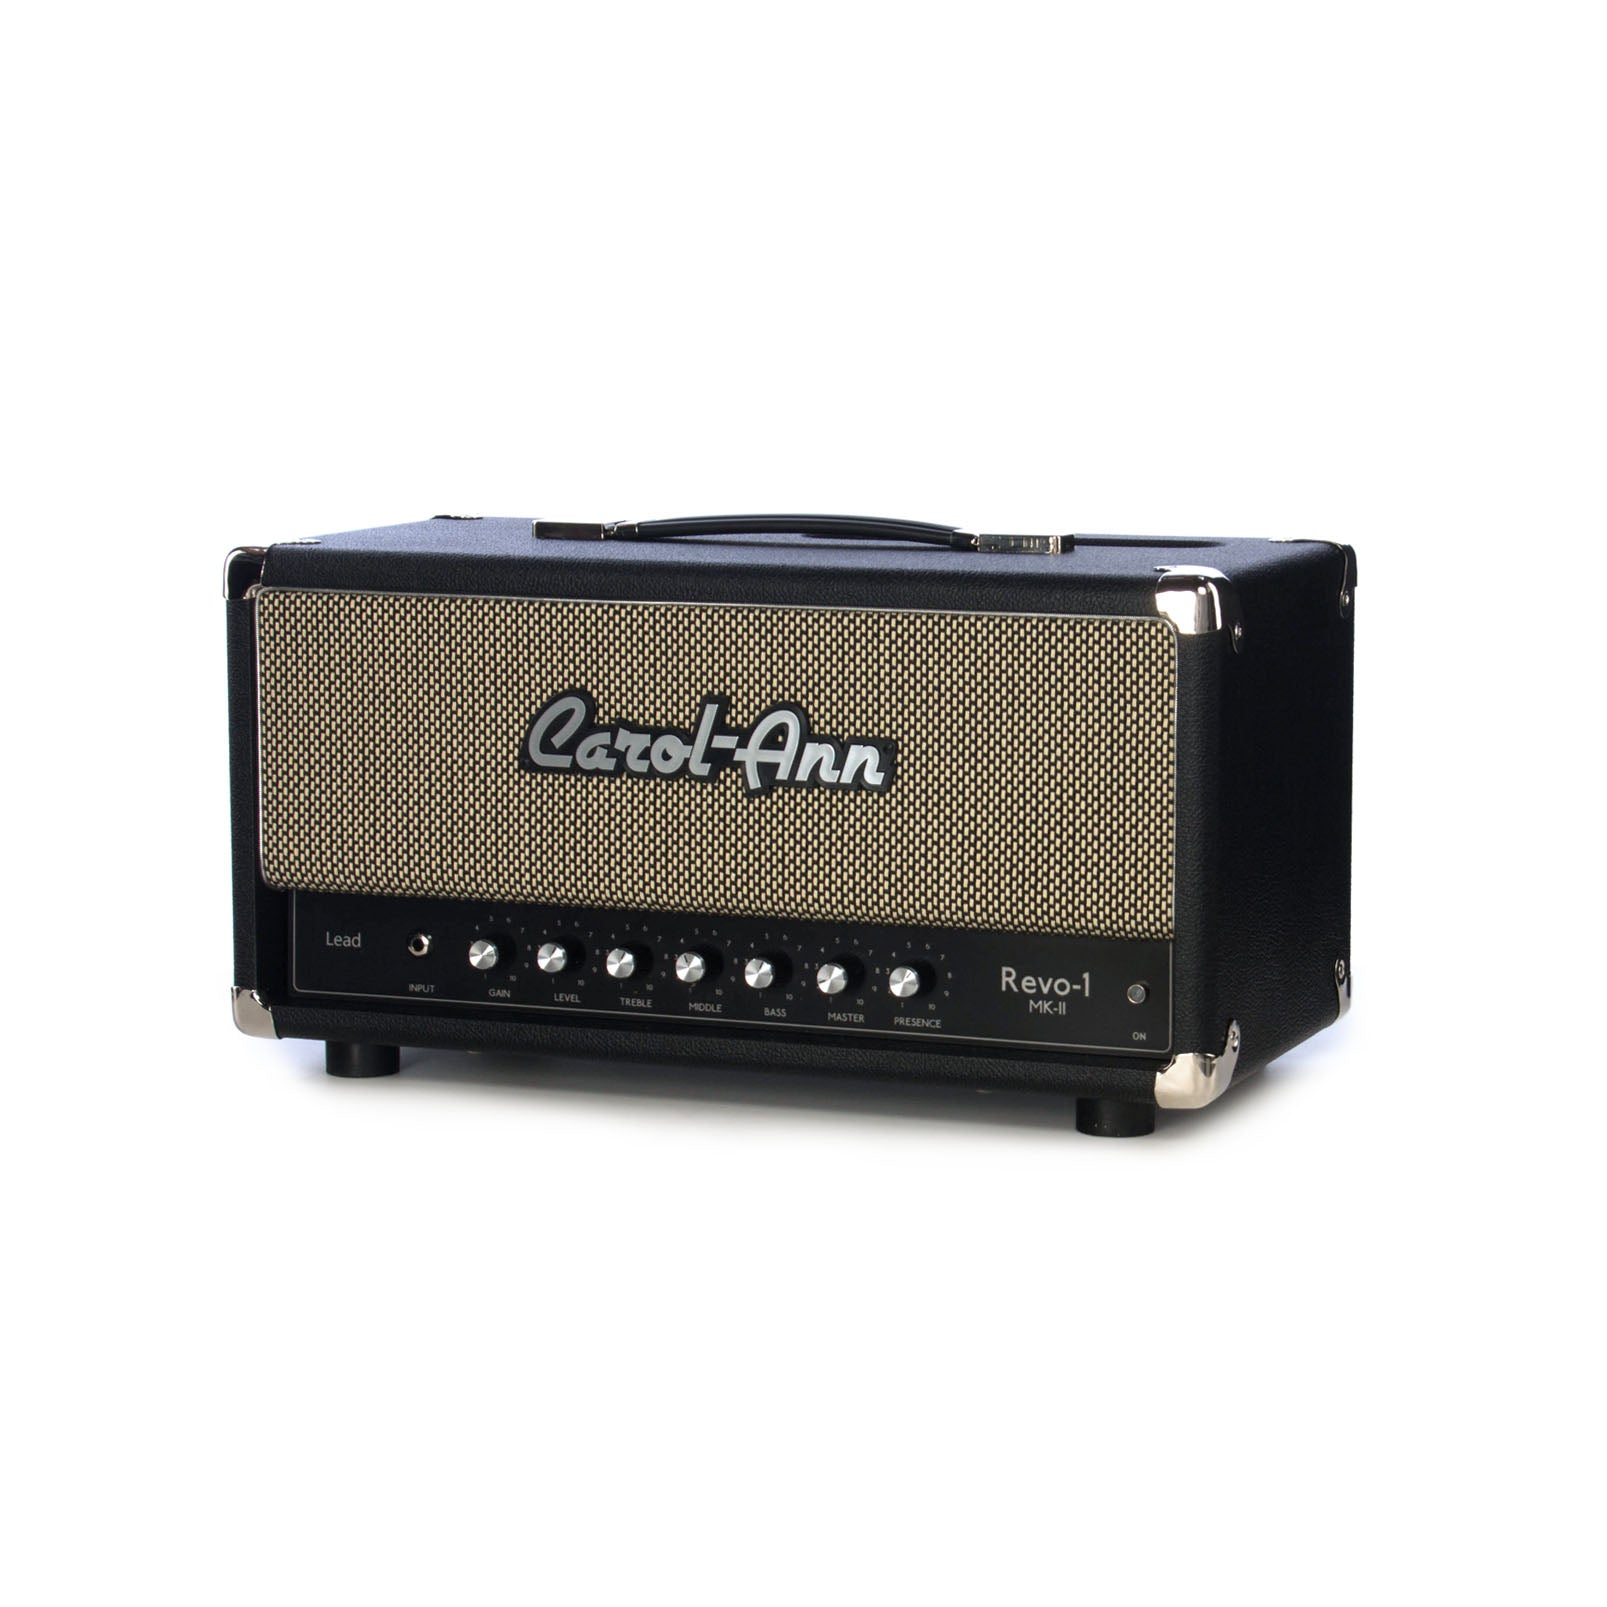 Carol Ann Amps Revo 1 Mkii Head 50 Watt Marshall Jubilee Style Watts Audio Amplifier Tube